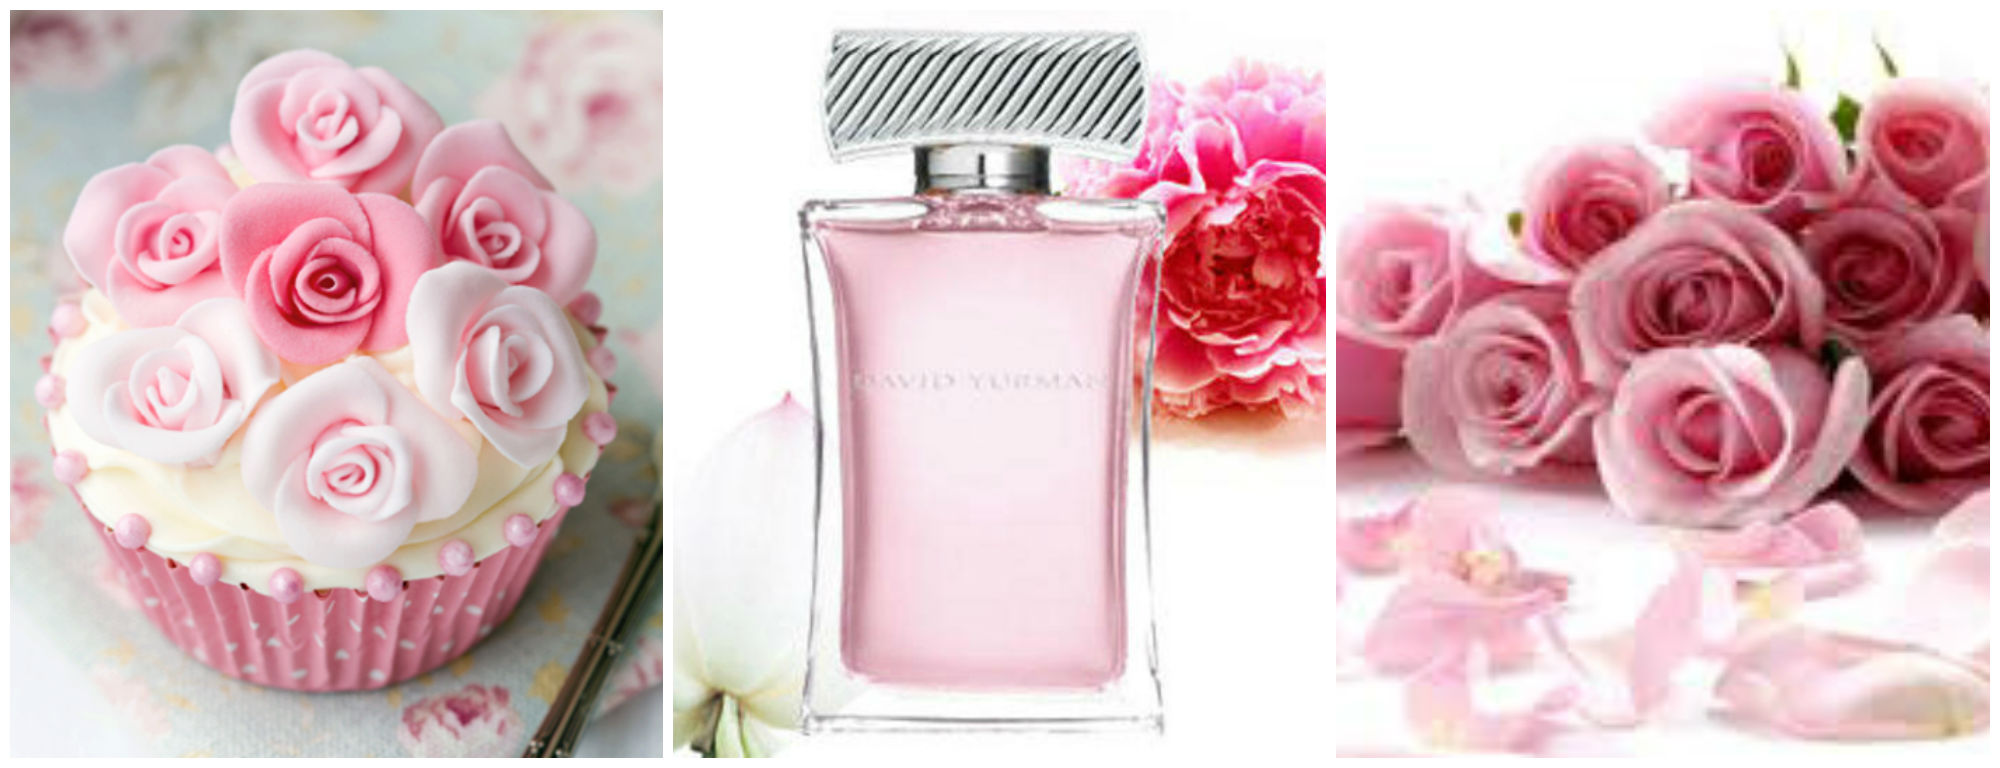 Perfume of the Day: David Yurman Delicate Essence